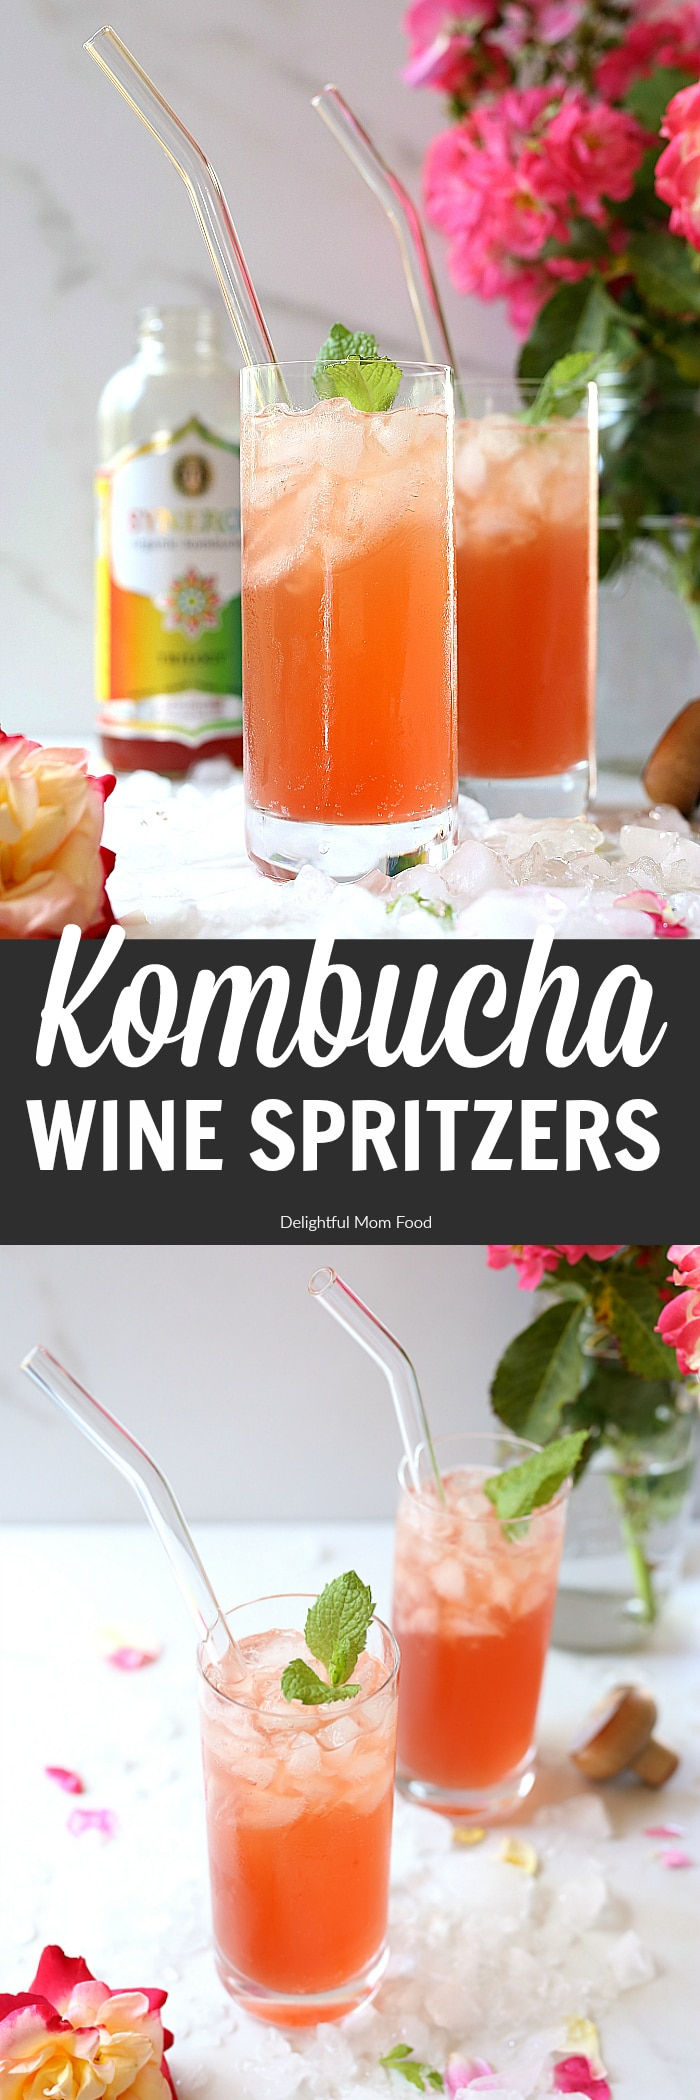 Kombucha wine spritzer – a new light and flavorful blend of a bubbly probiotic drink and white or rosé wine transformed into a refreshing kombucha and wine beverage! If you love wine and you love kombucha you will LOVE this kombucha wine spritzer! Not only is it perfect for mommy happy hours, wind down time, or parties - it is pretty, bright and fun! #kombucha #wine #spritzer #drinks #beverage | Recipe at Delightfulmomfood.com